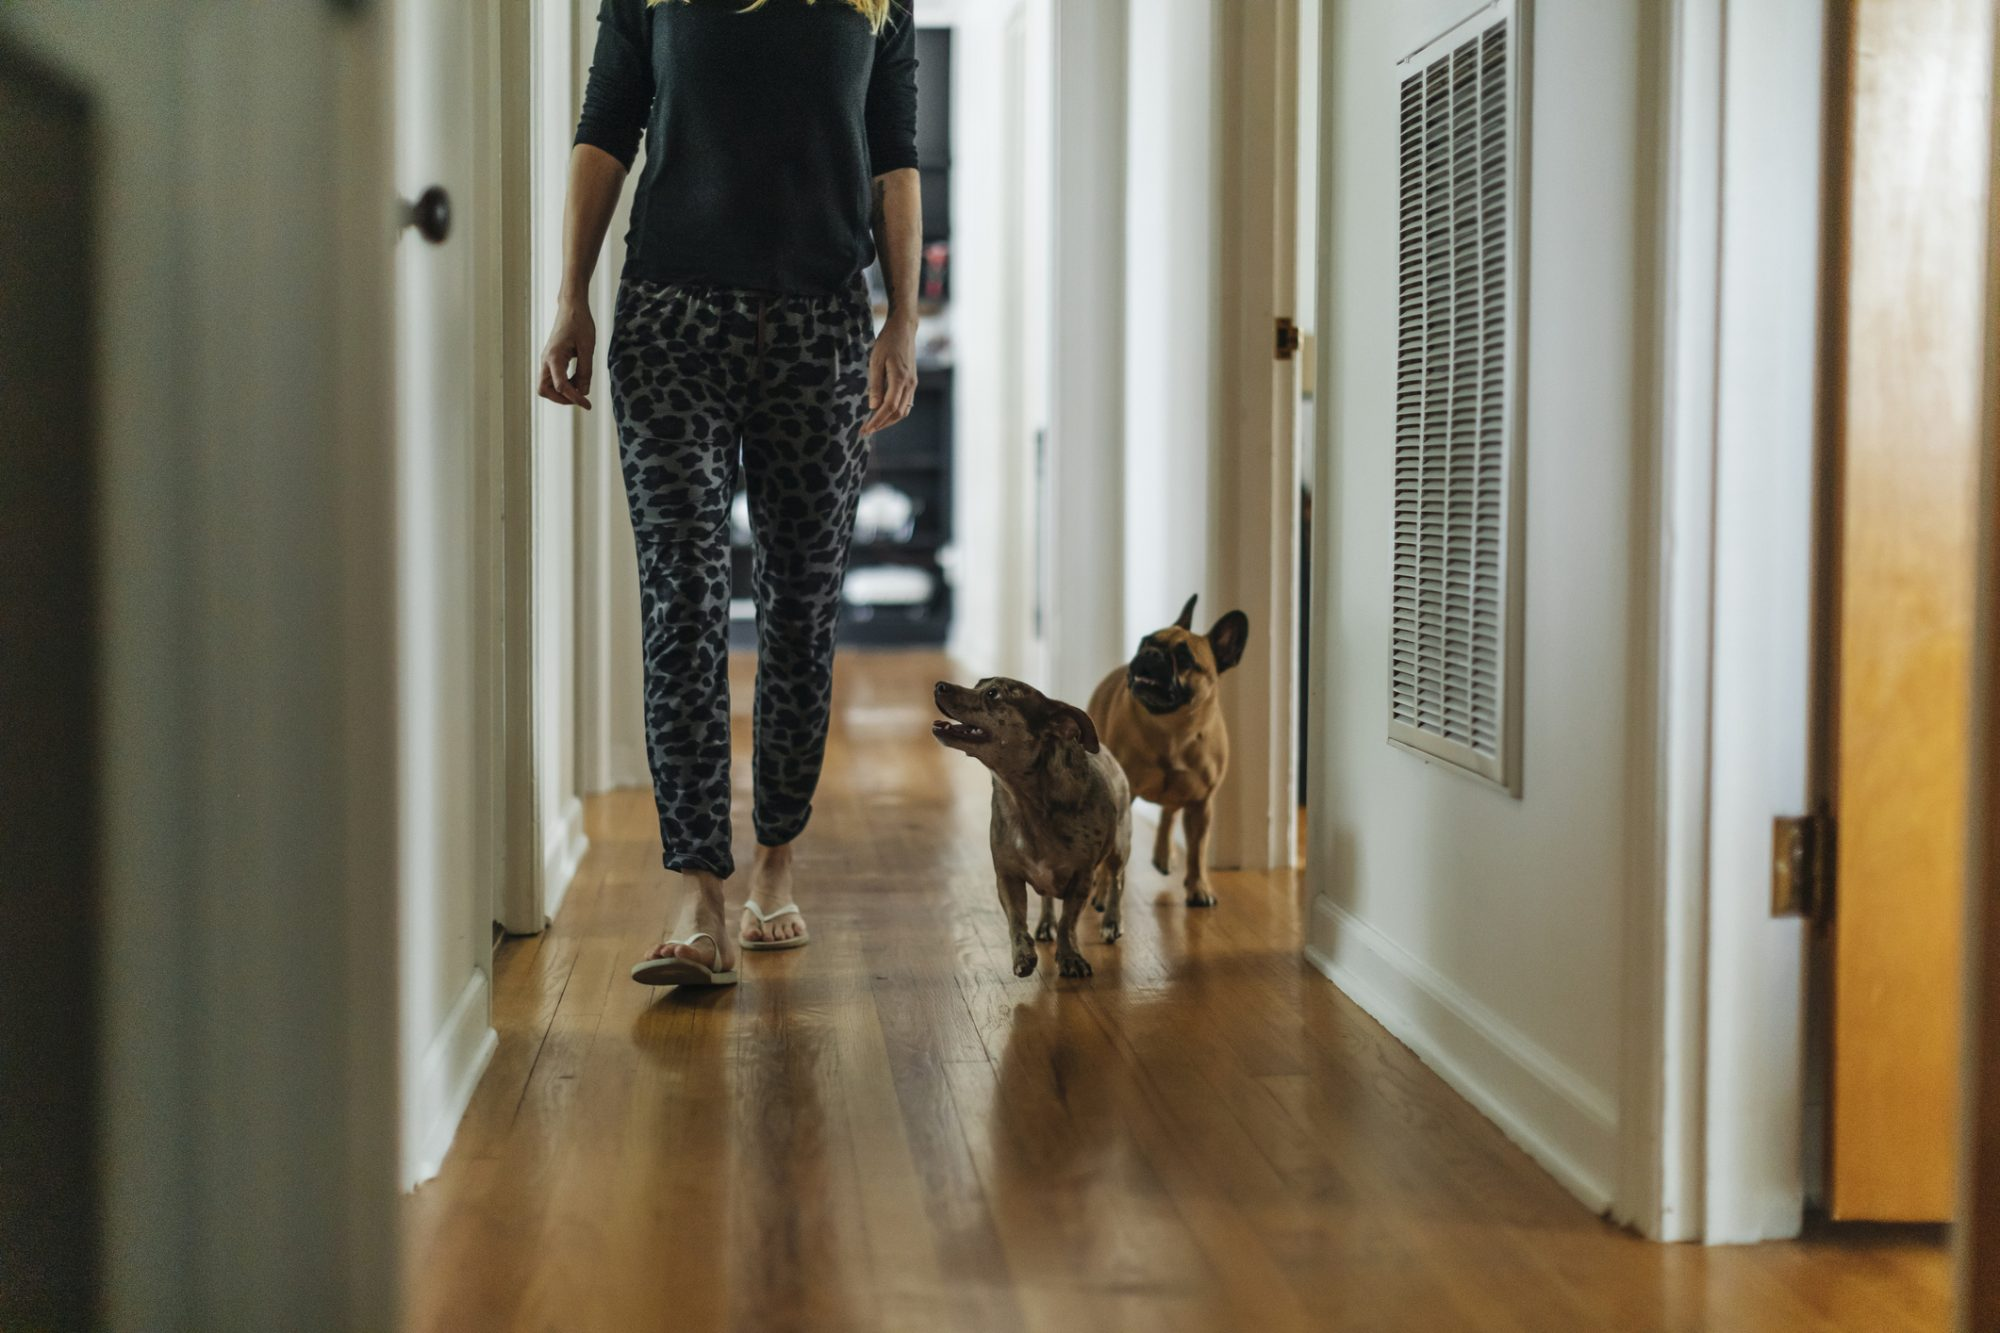 Woman and dogs walking in hallway at home